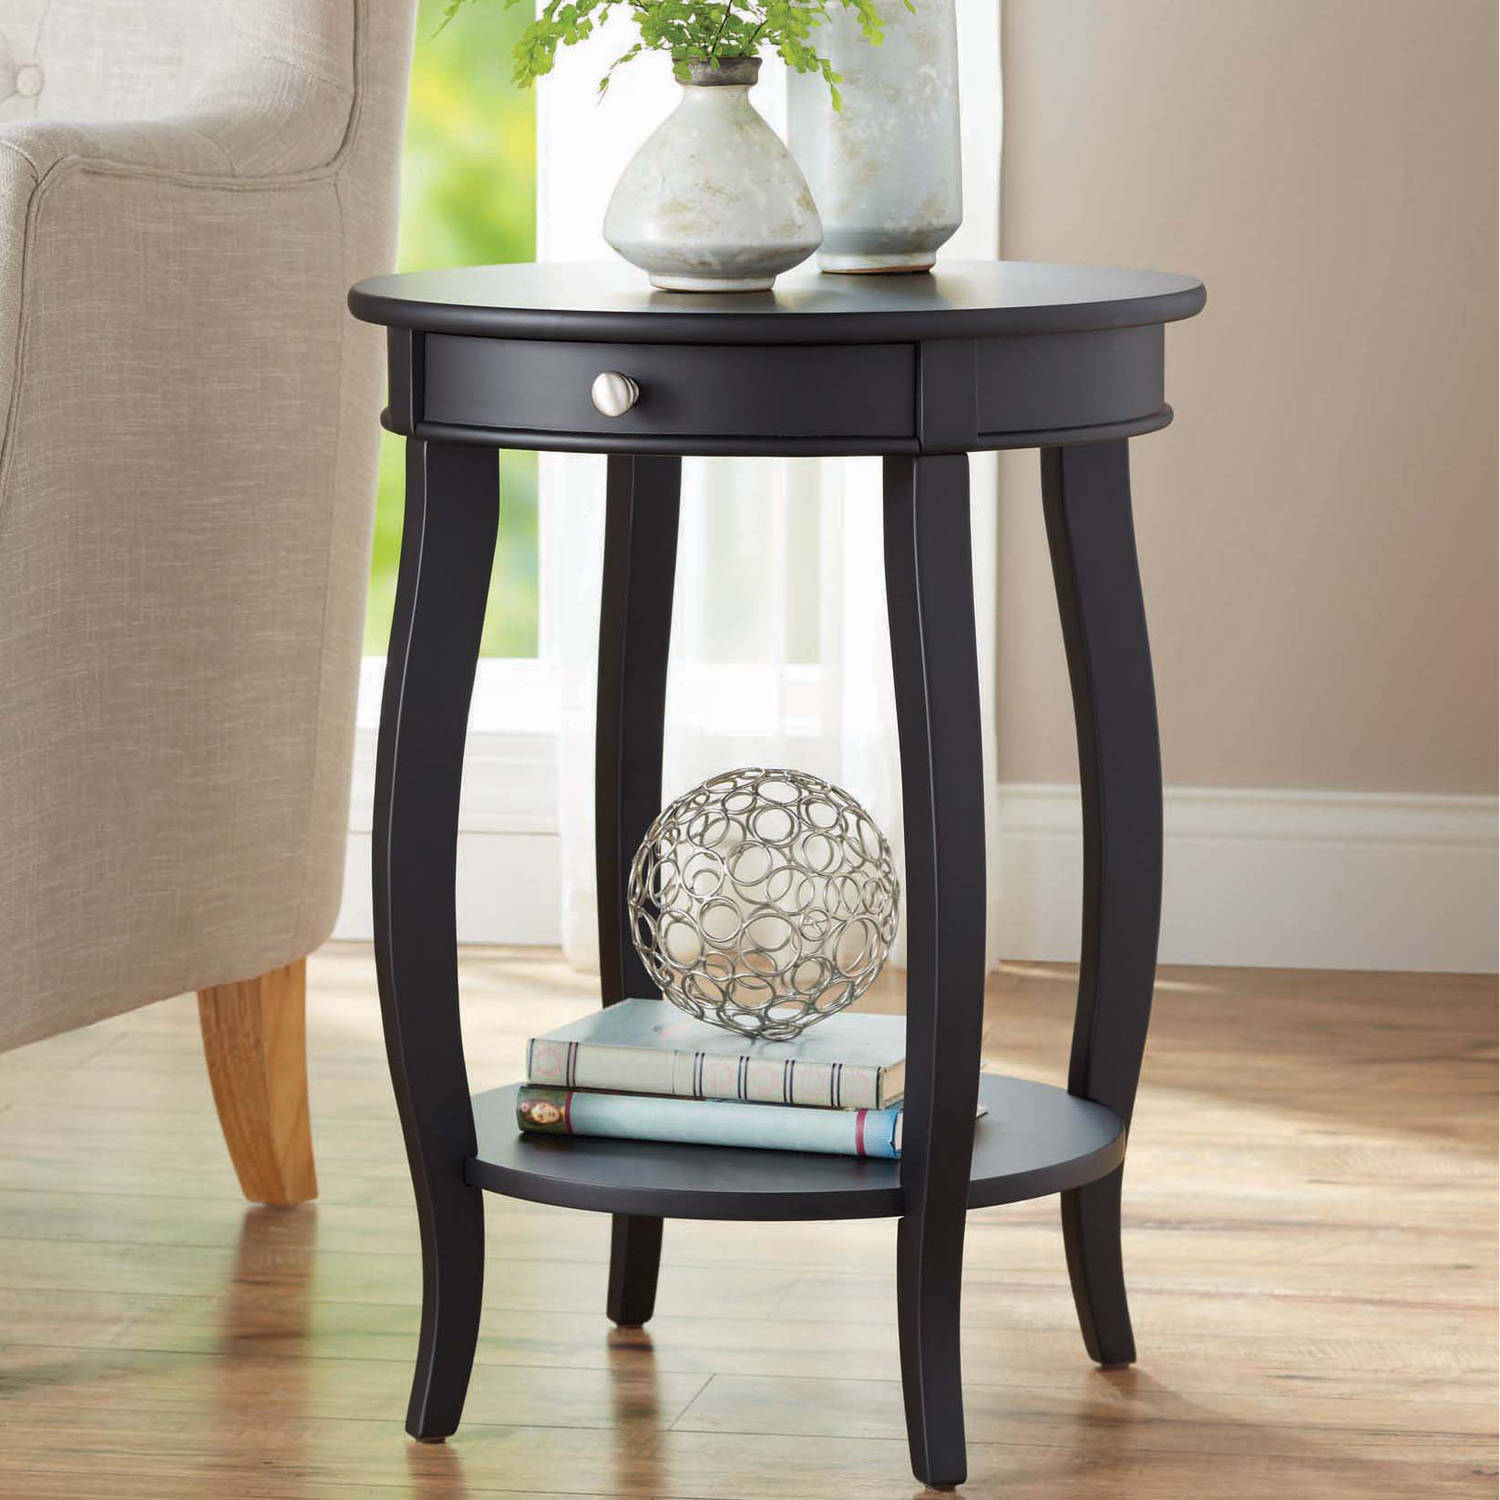 black accent table with drawer home design ideas winsome timmy better homes gardens round multiple decorative accessories for dining room cherry wood coffee outdoor bar set high